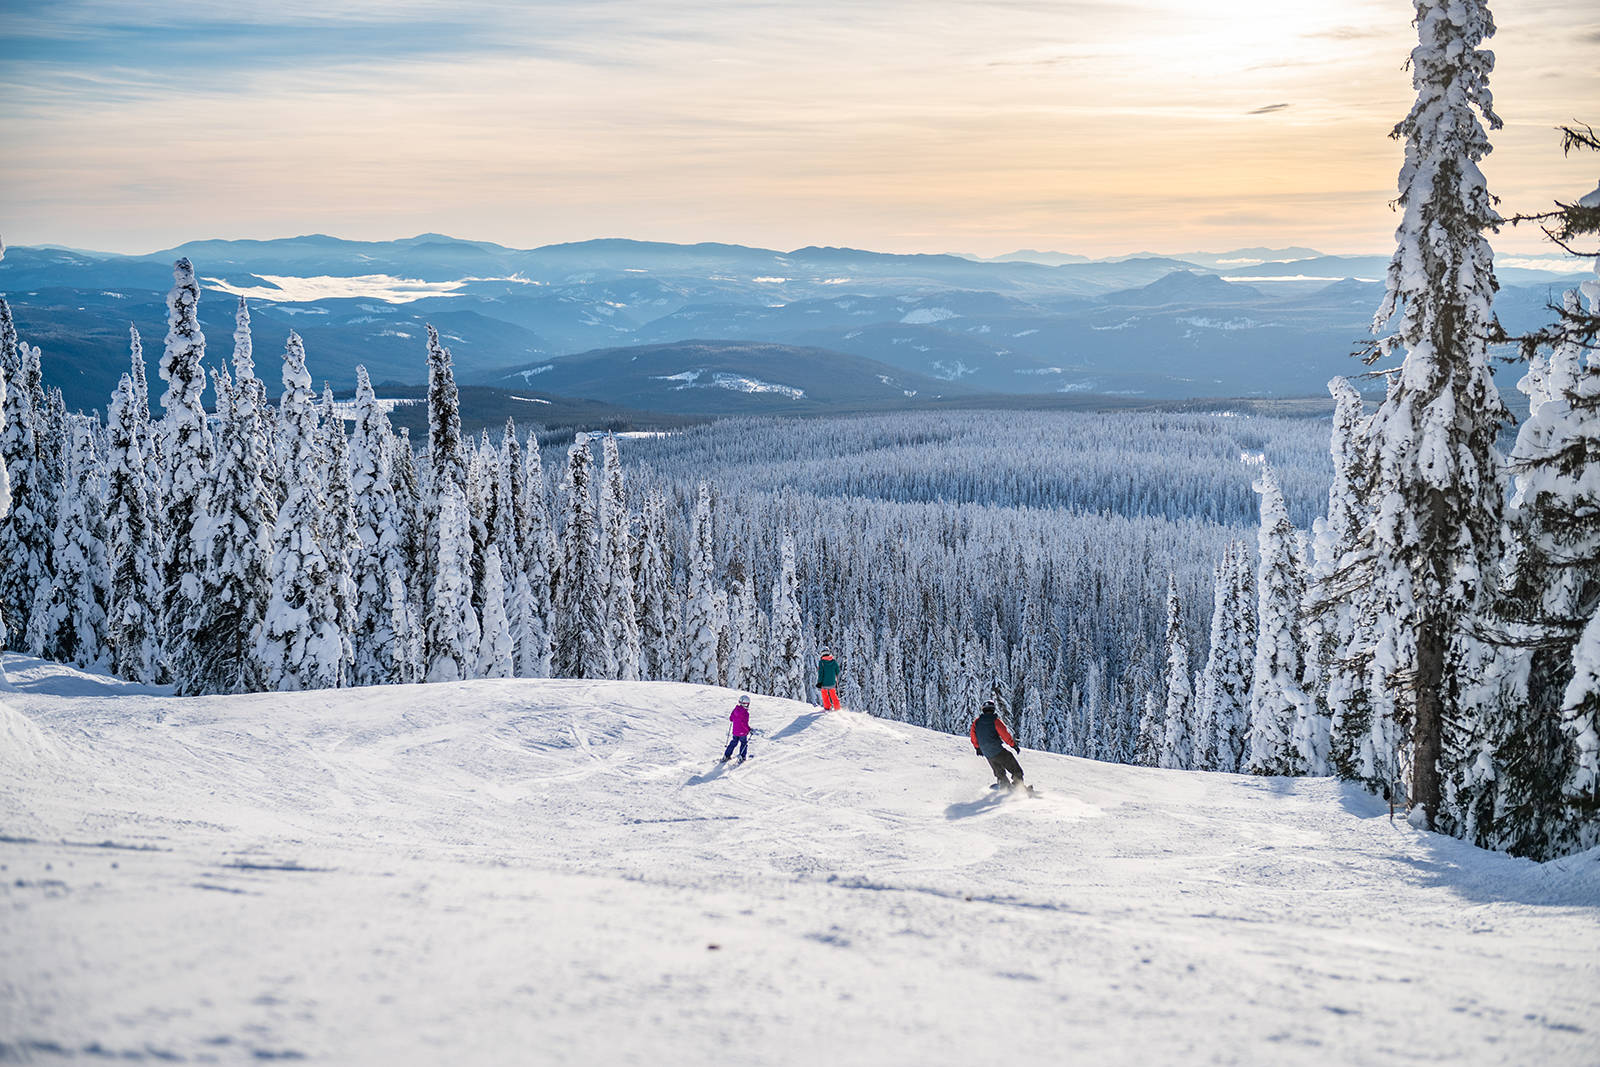 There have been 60 confirmed cases of COVID-19 at Big White Ski Resort. (Big White Ski Resort photo)